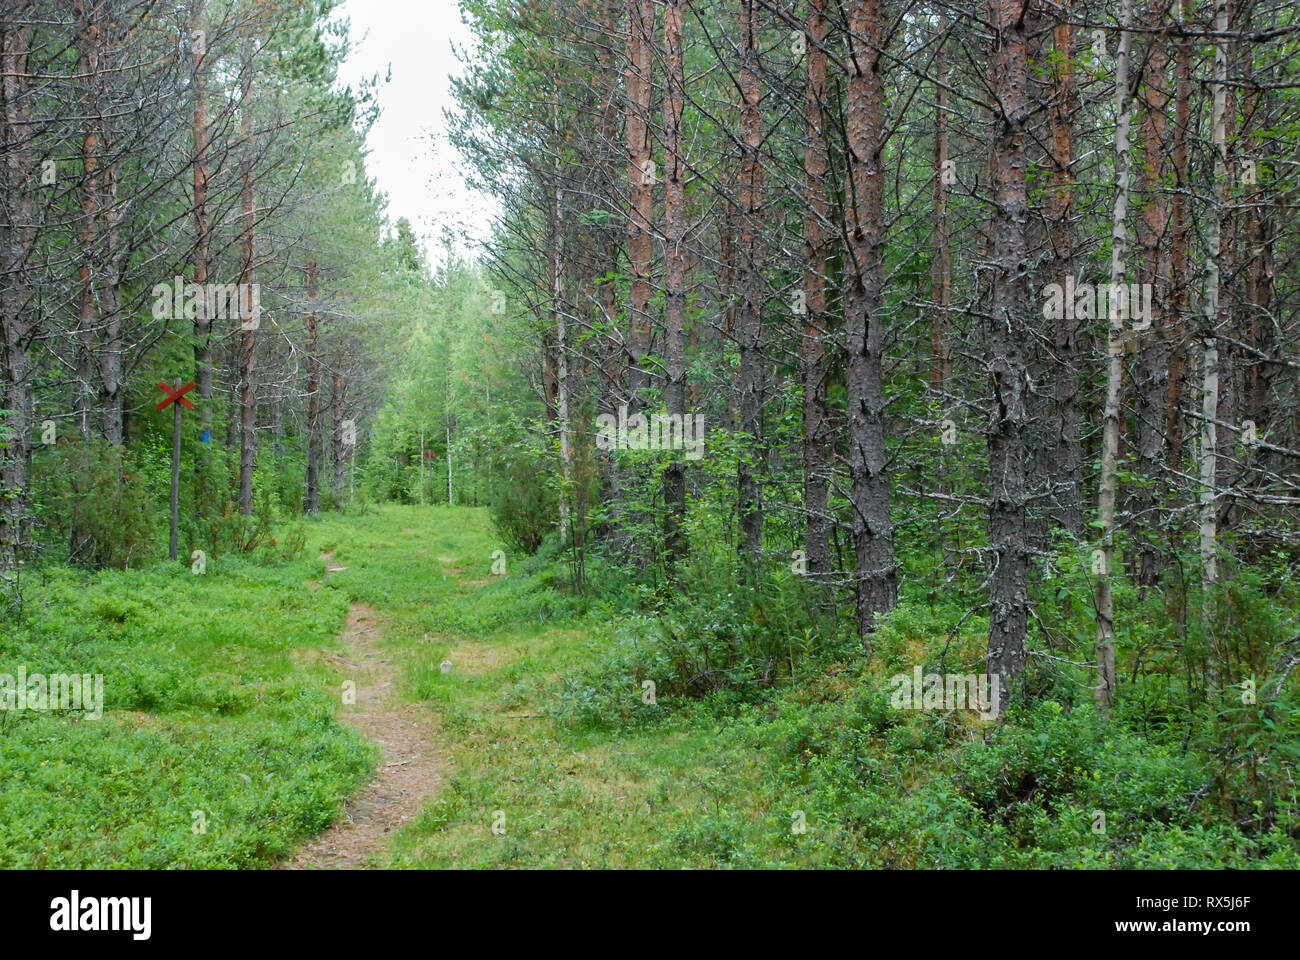 You can go hiking, cycling, canoeing, fishing, or even on a husky safari. Taiga Forest Boreal Forest Biome Natural Wild Landscape In North Eastern Finland Europe With Coniferous Trees Including Pines And Spruces Stock Photo Alamy